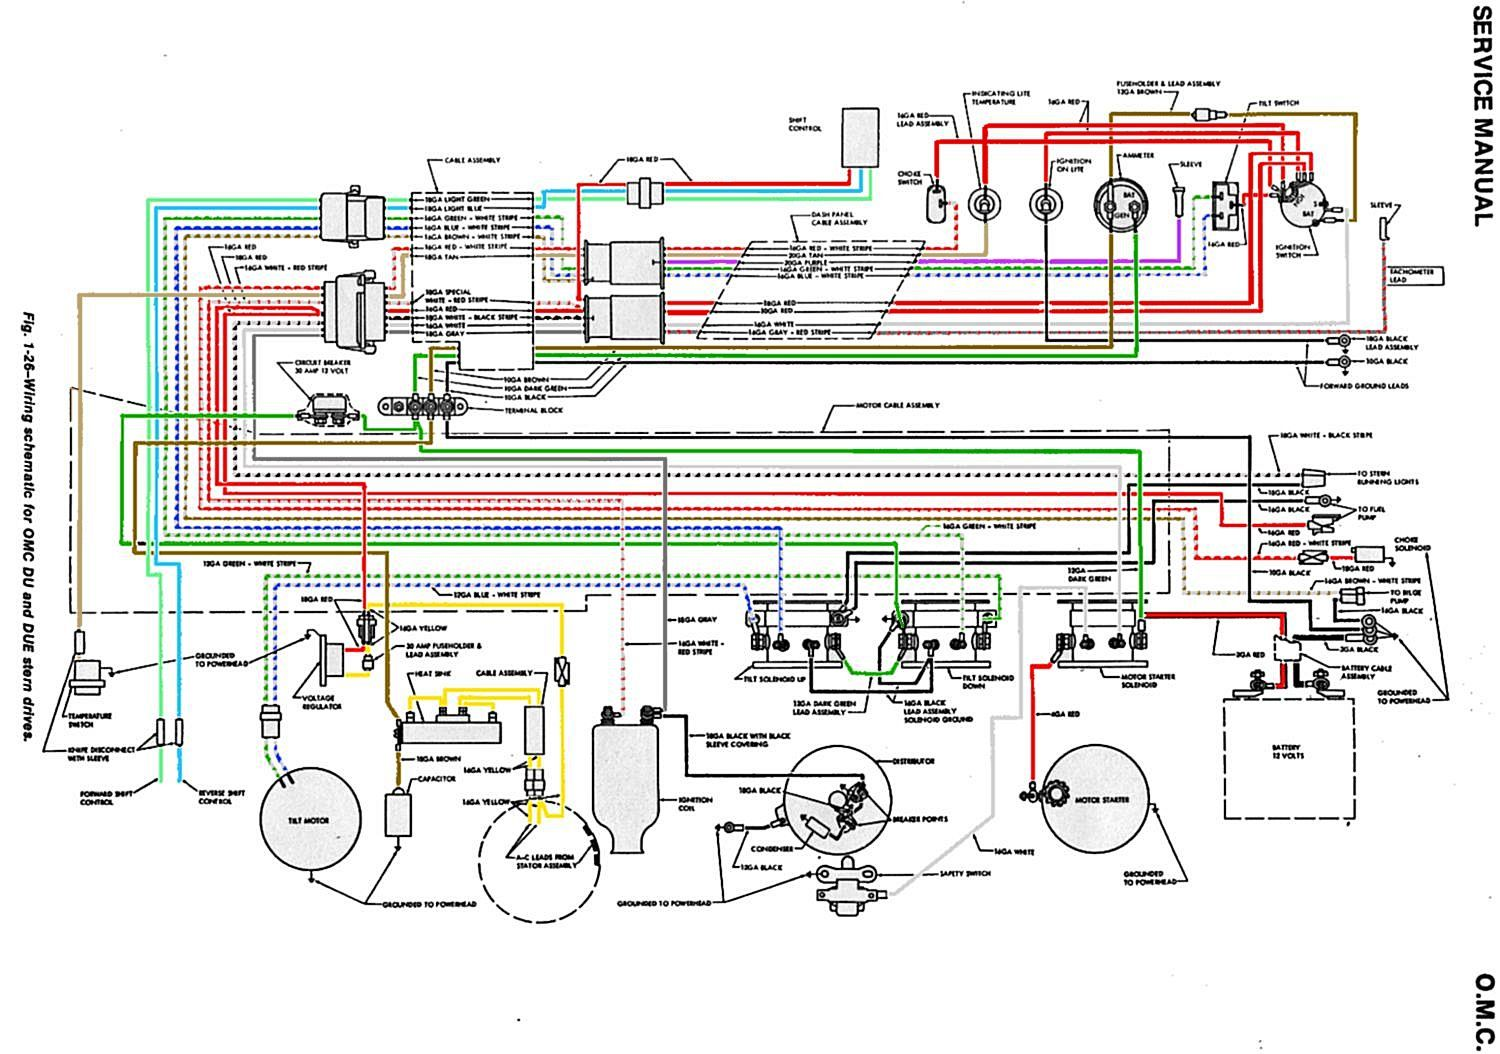 65 68_OMC_Wiring_Schematic omc boat technical info omc wiring harness diagram at bakdesigns.co